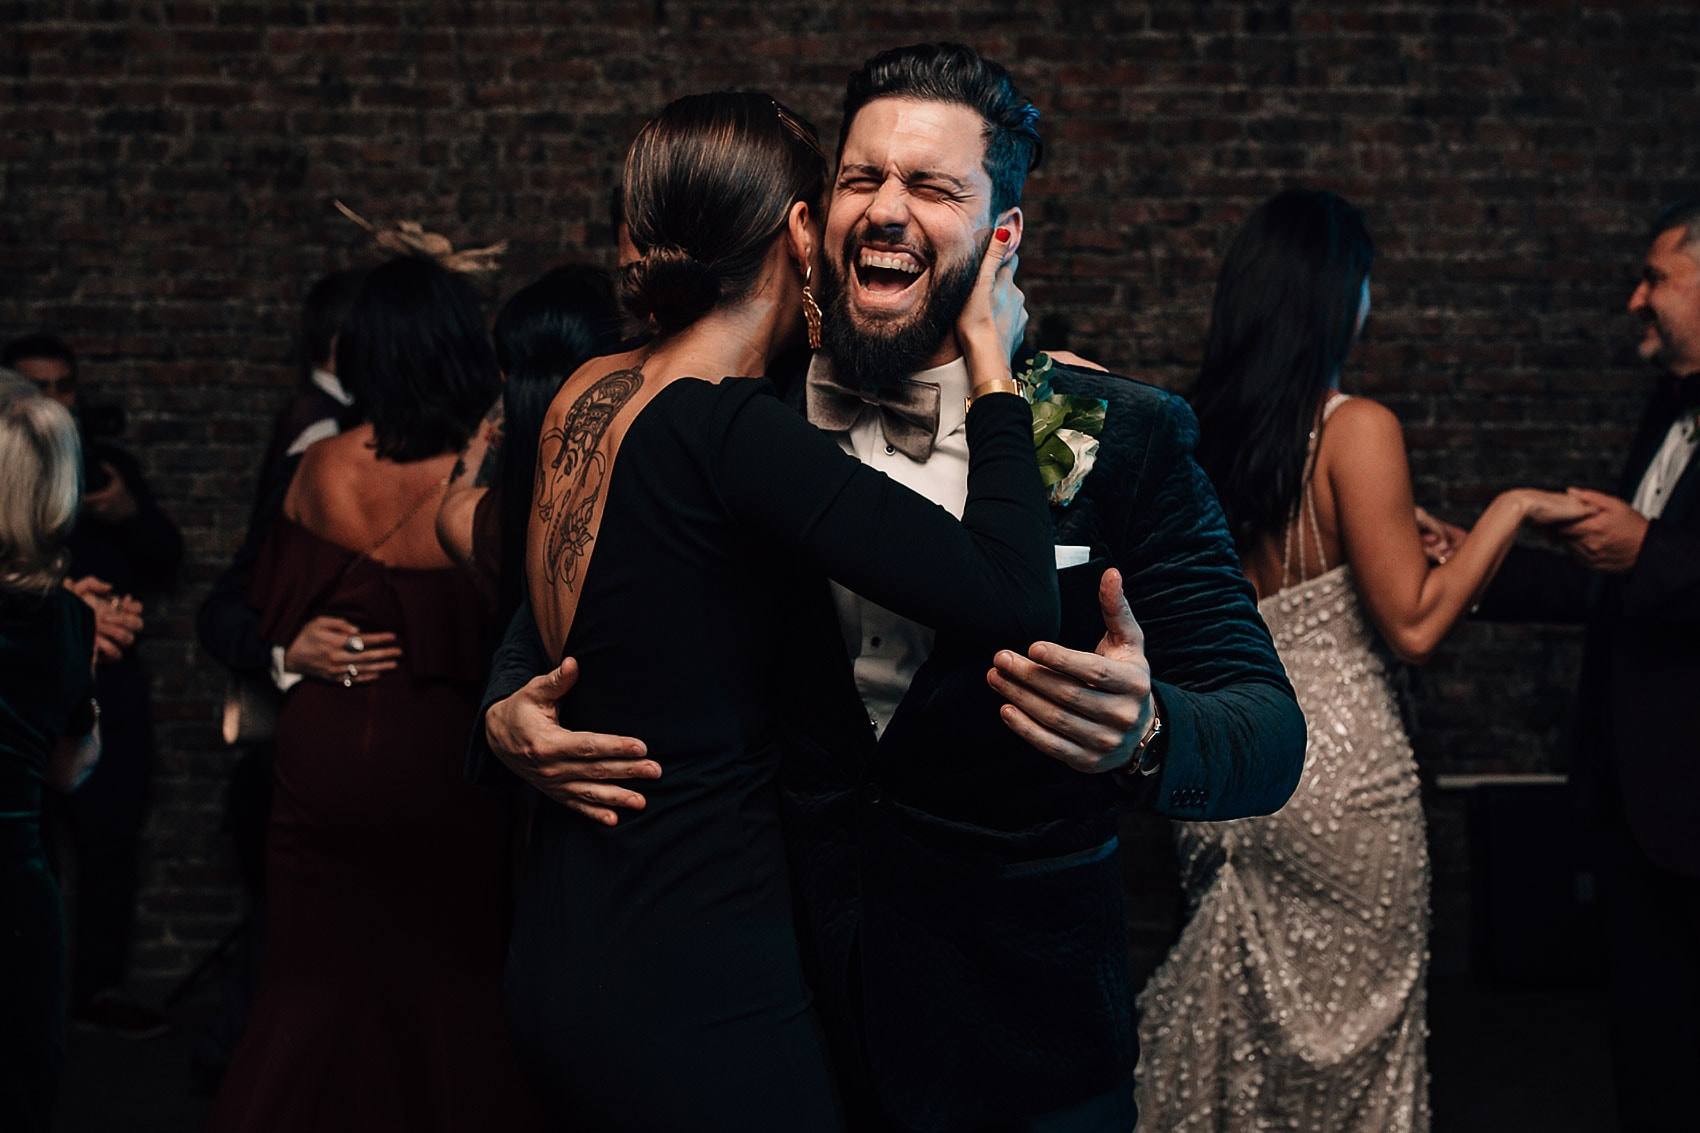 Gatsby style wedding photography dance-floor